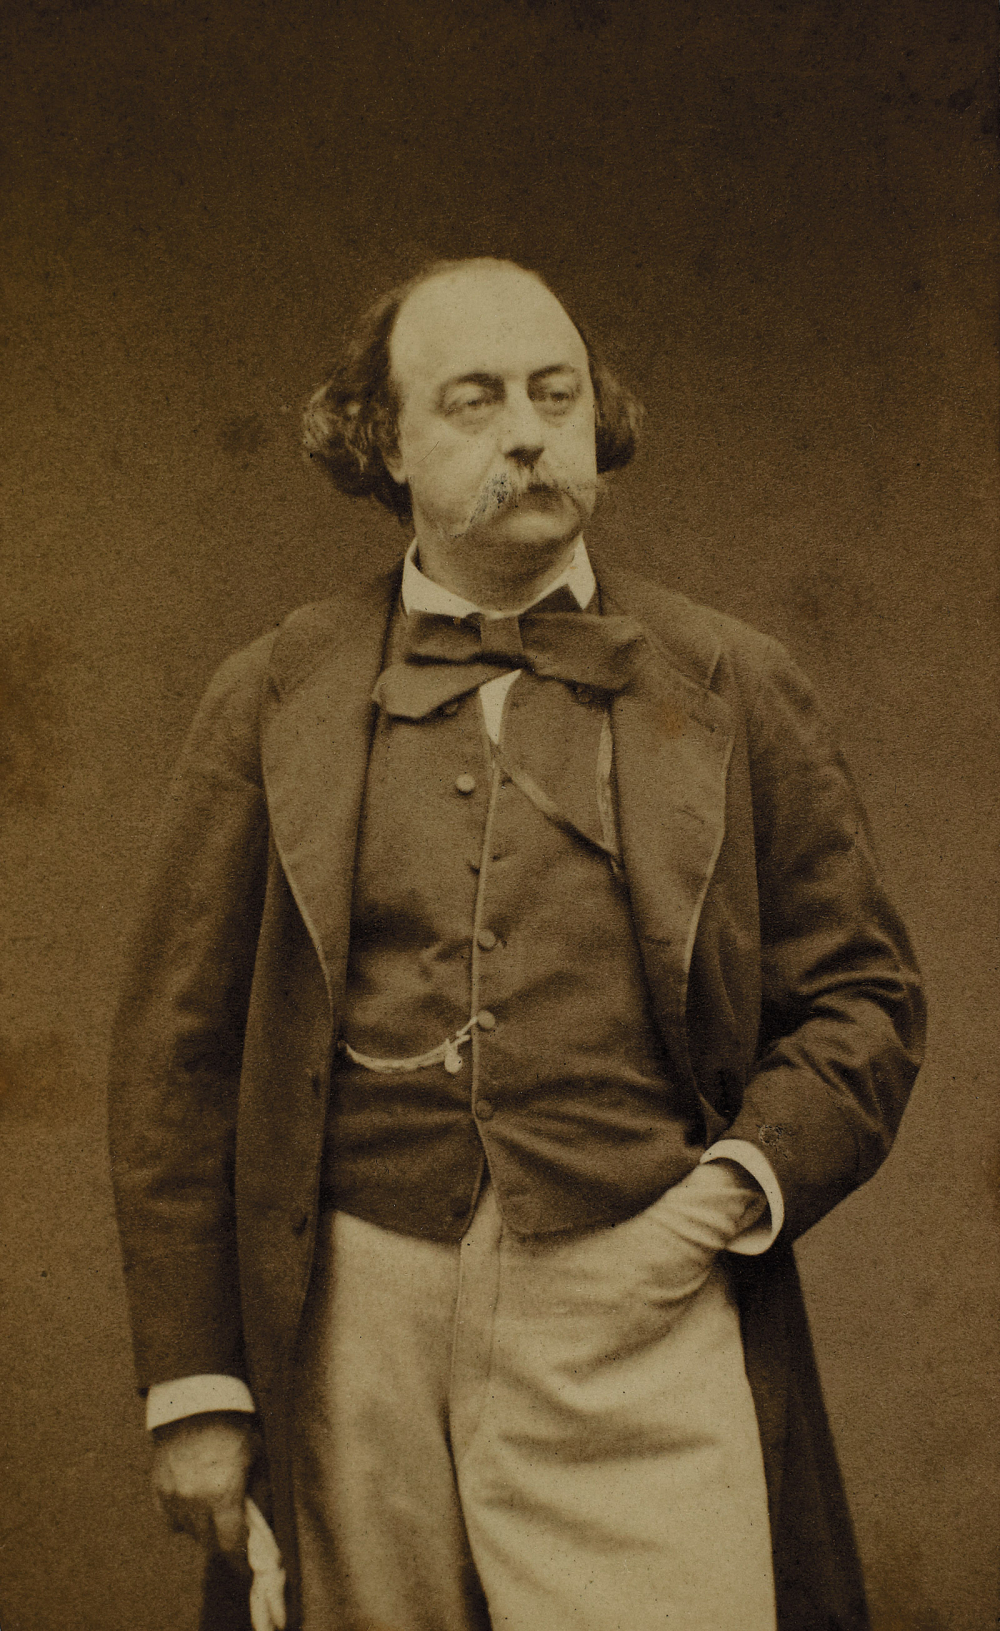 flaubert thesis This thesis is part of the collection entitled: unt theses and dissertations and was provided by unt libraries to digital library, a digital repository hosted by the unt libraries it has been viewed 2125 times , with 150 in the last month.